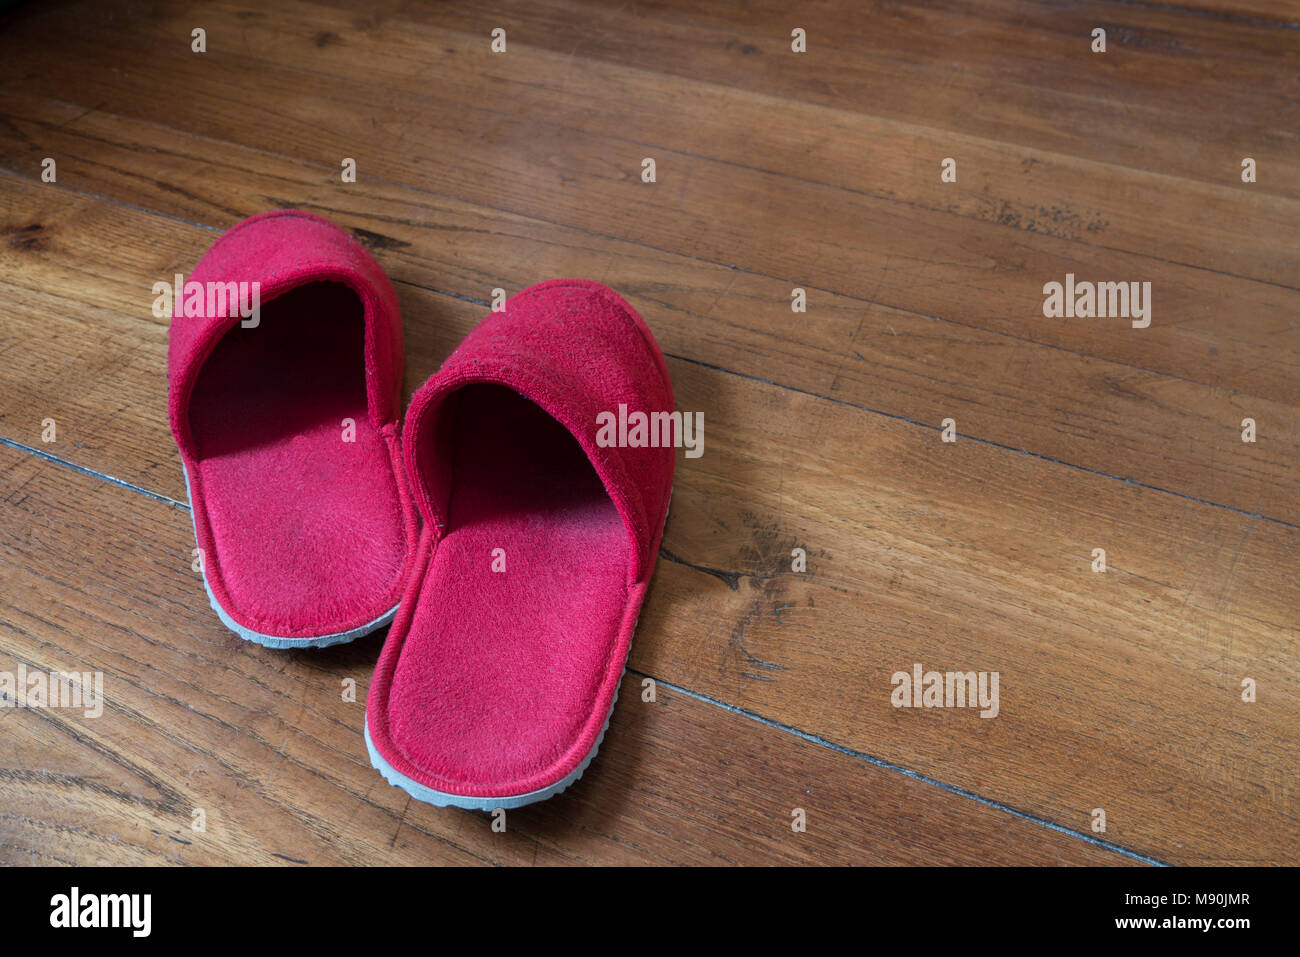 1480aef13b2 A pair of red slippers on a wooden floor Stock Photo  177650279 - Alamy